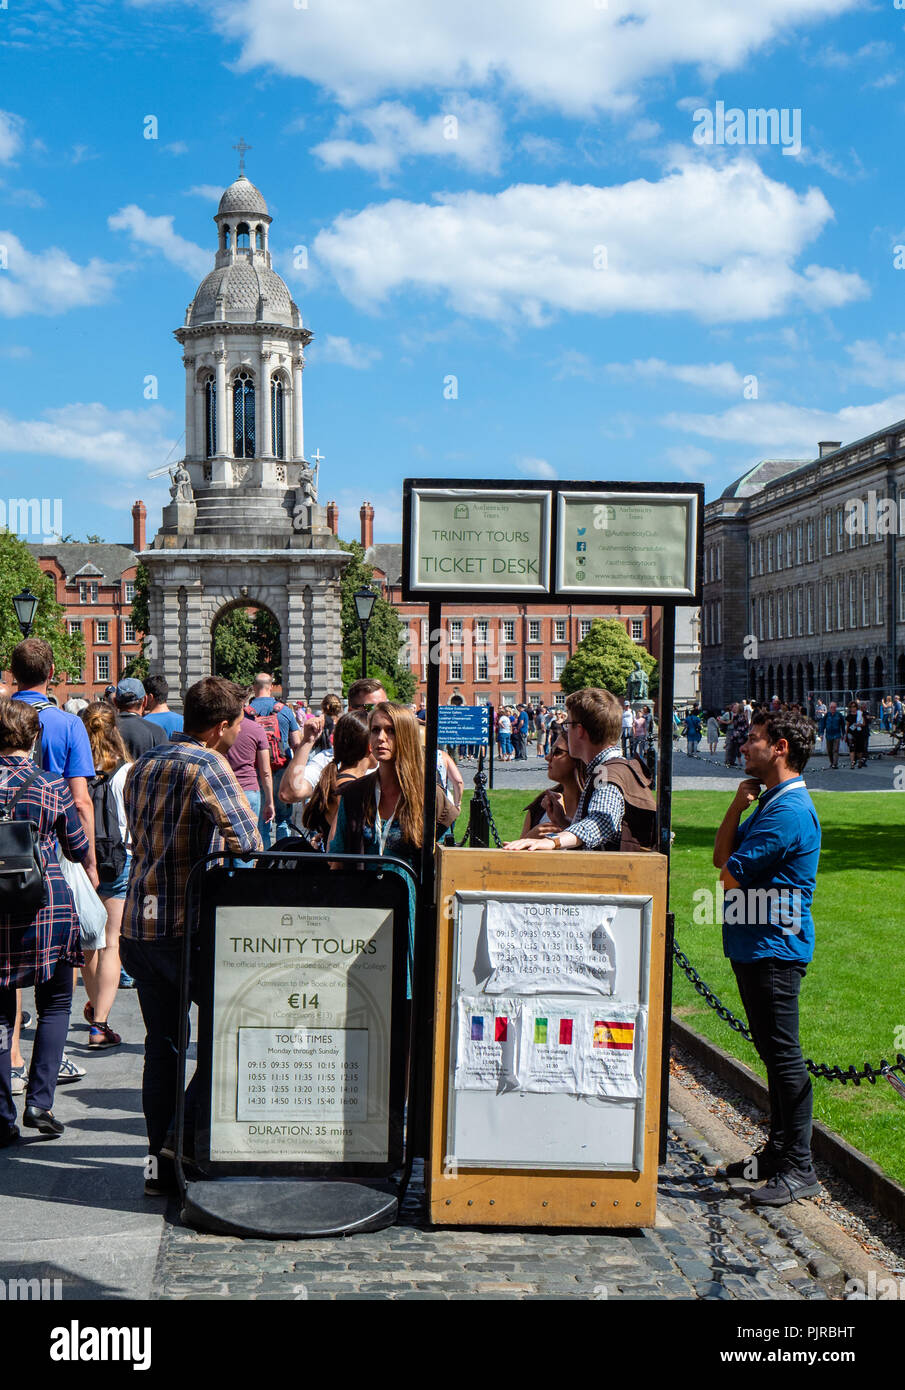 Students at Trinity College Dublin welcoming visitors and offering tours of the university - Stock Image